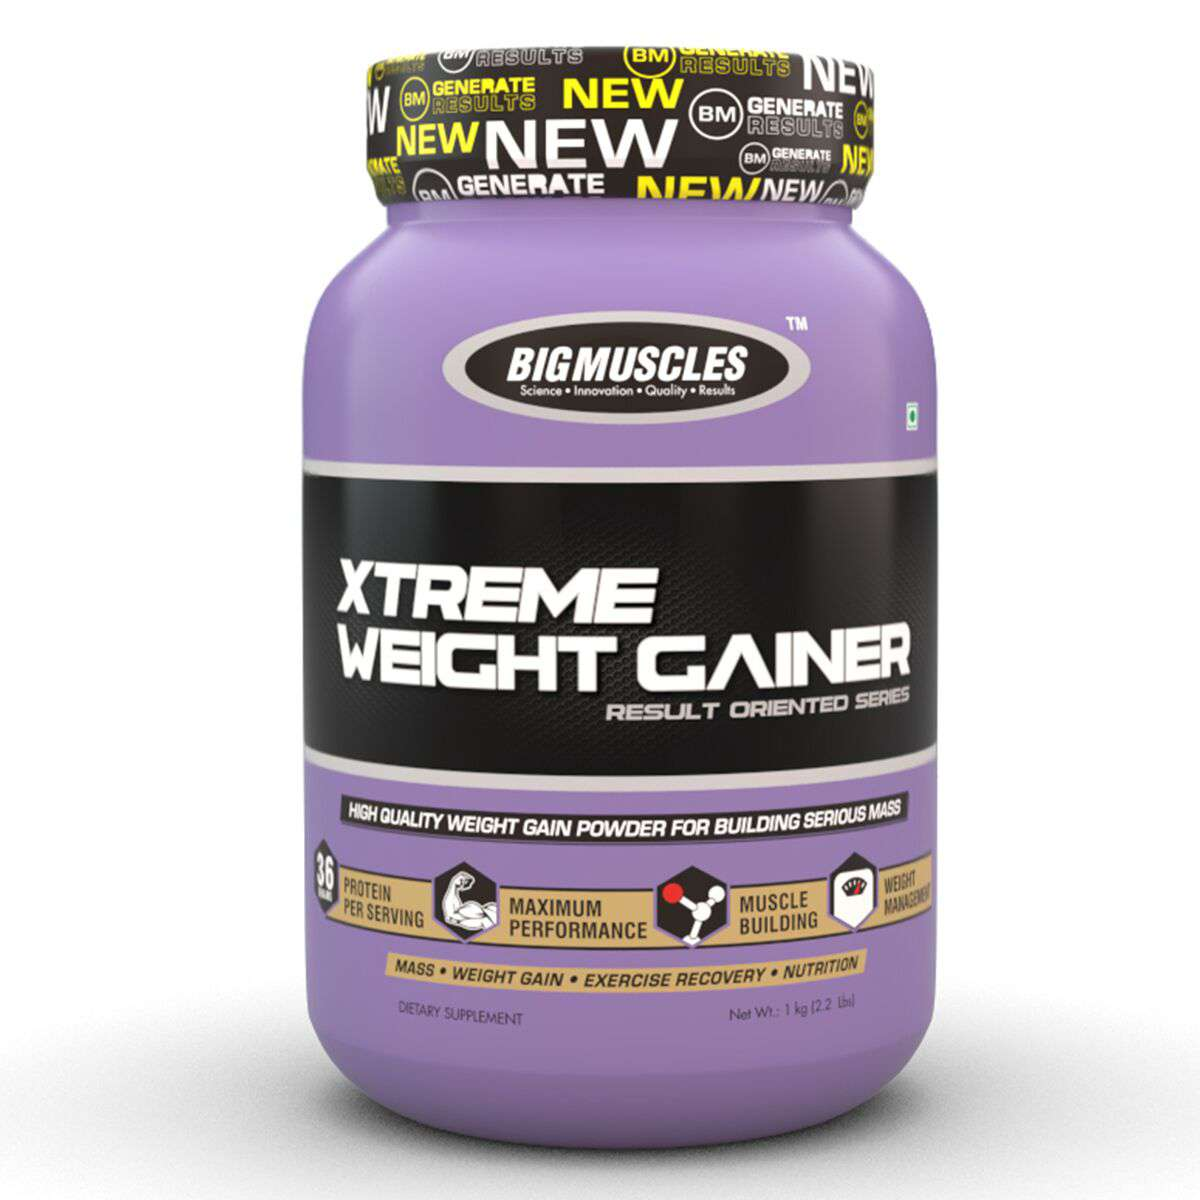 Big-Muscles-Xtreme-Weight-Gainer-2.2-lb-12